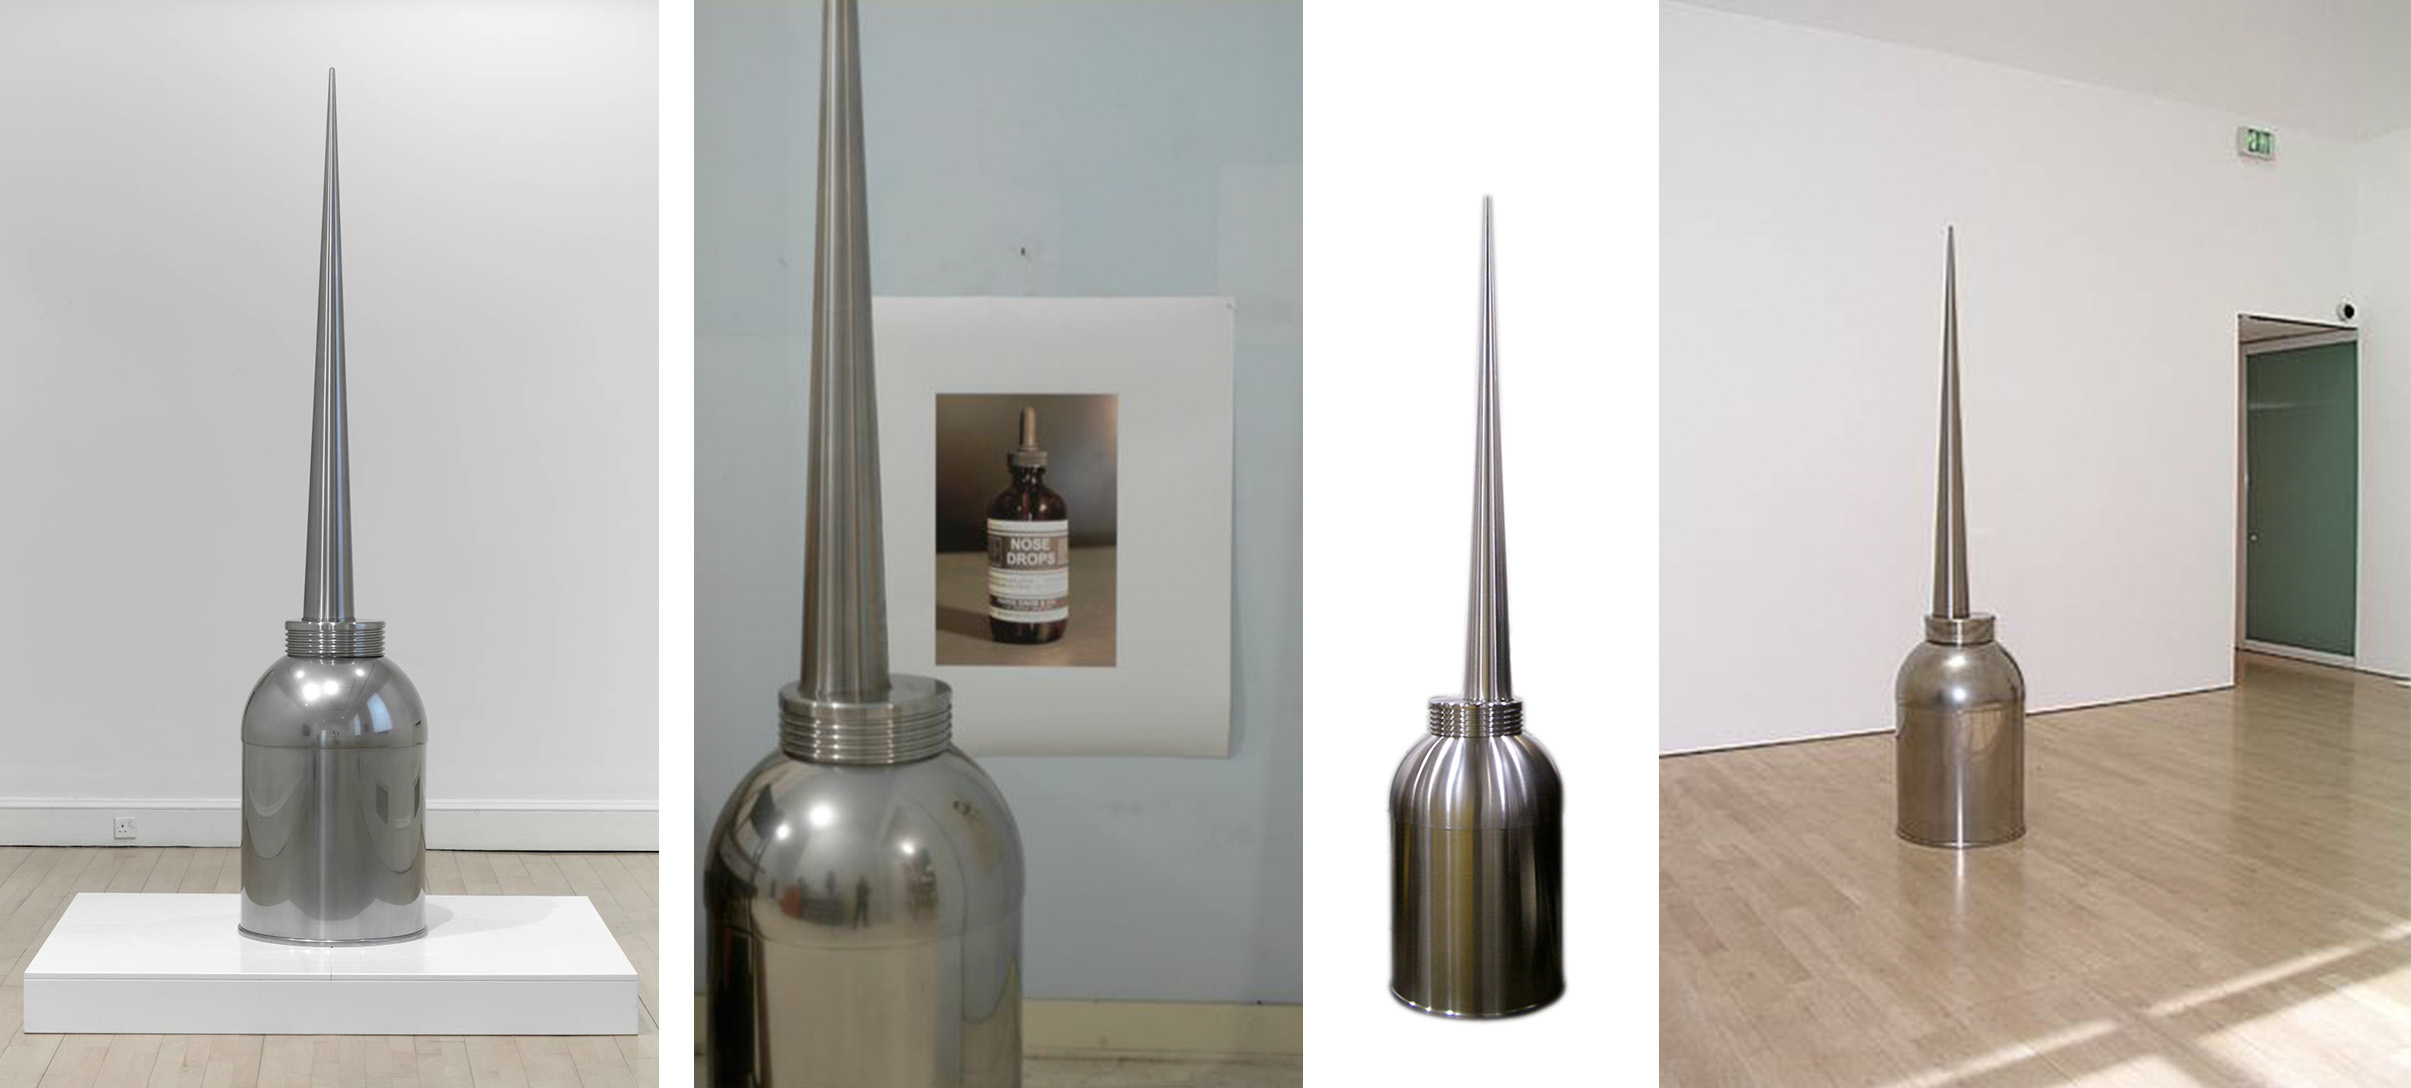 Robert Therrien  No title (Oil can) 2010  97 x 22 x 22 inches  Stainless steel      View More Robert Therrien